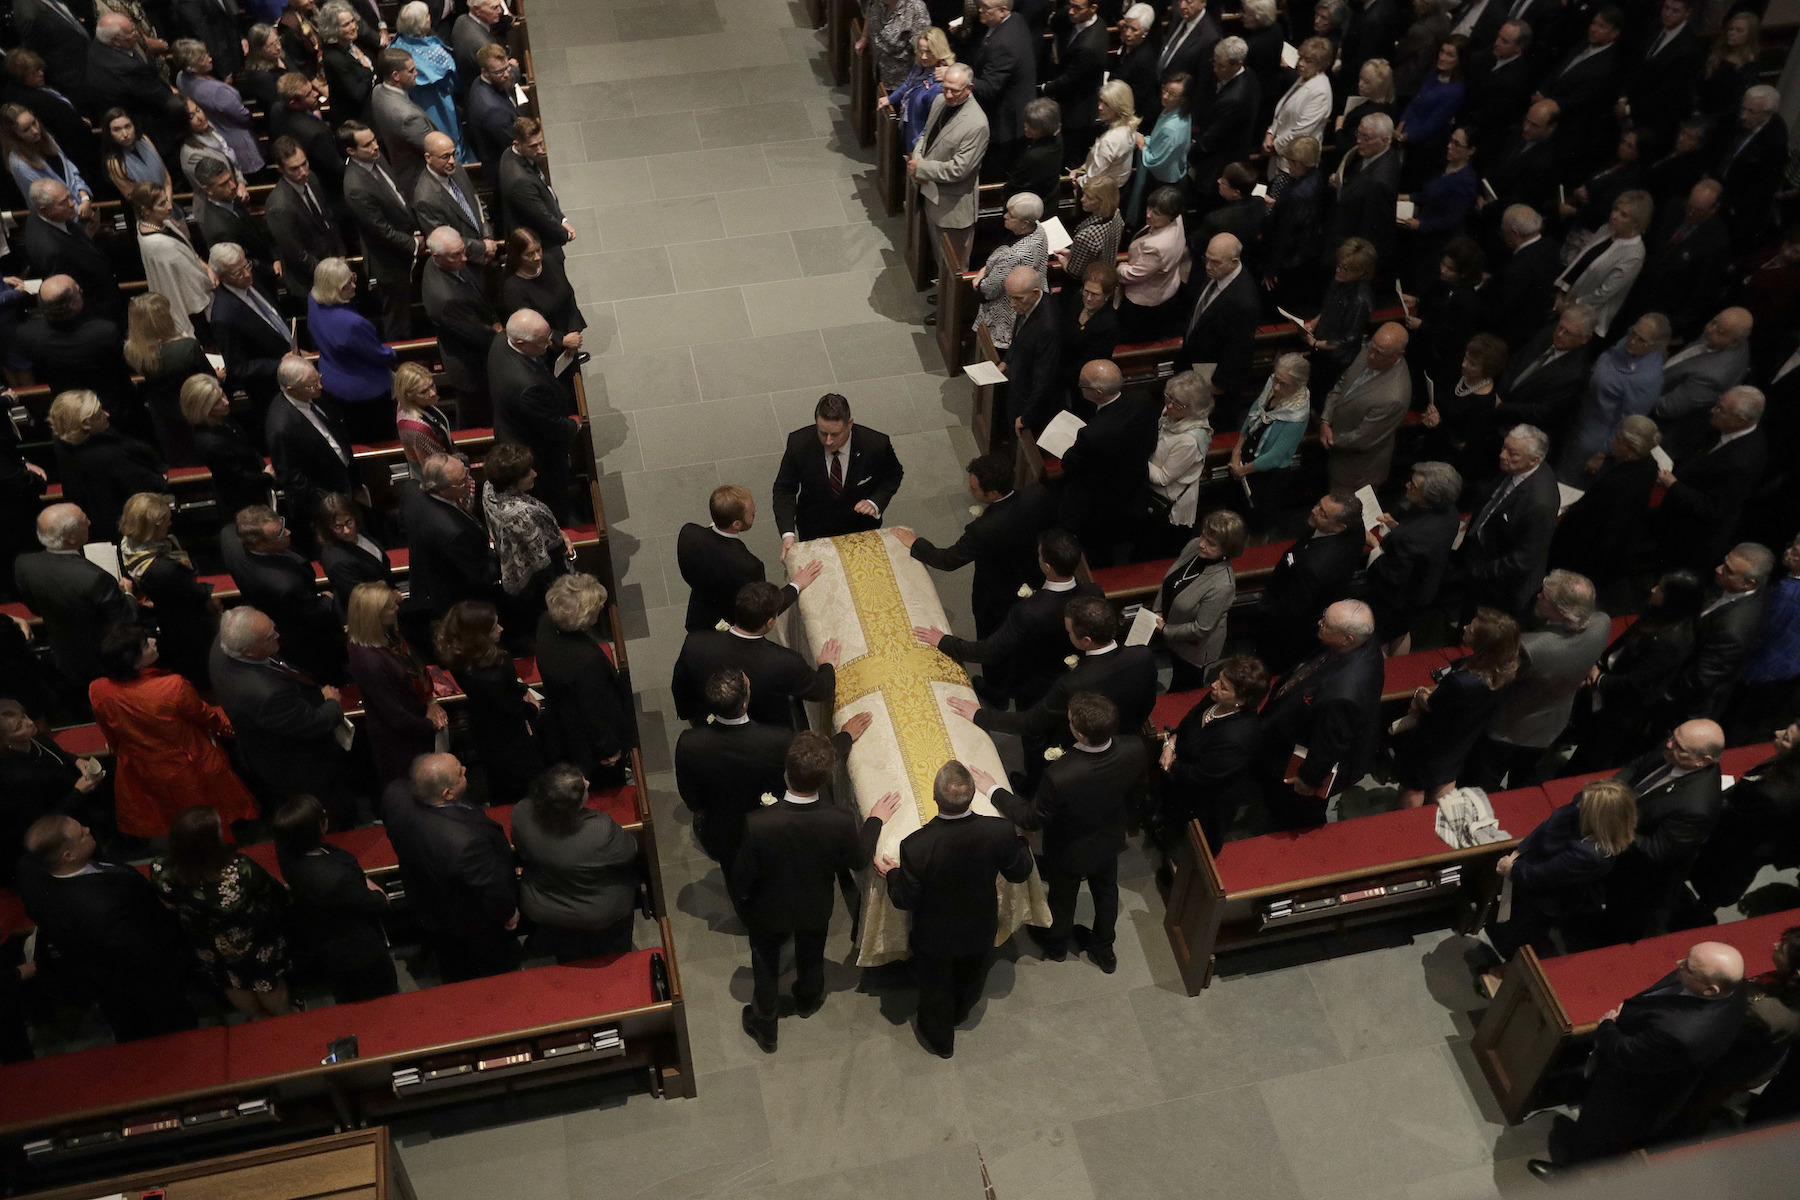 <div class='meta'><div class='origin-logo' data-origin='AP'></div><span class='caption-text' data-credit='AP Photo/David J. Phillip'>Grandson pallbearers prepare the casket of former first lady Barbara Bush during the funeral service at St. Martin's Episcopal Church, Saturday, April 21, 2018, in Houston.</span></div>